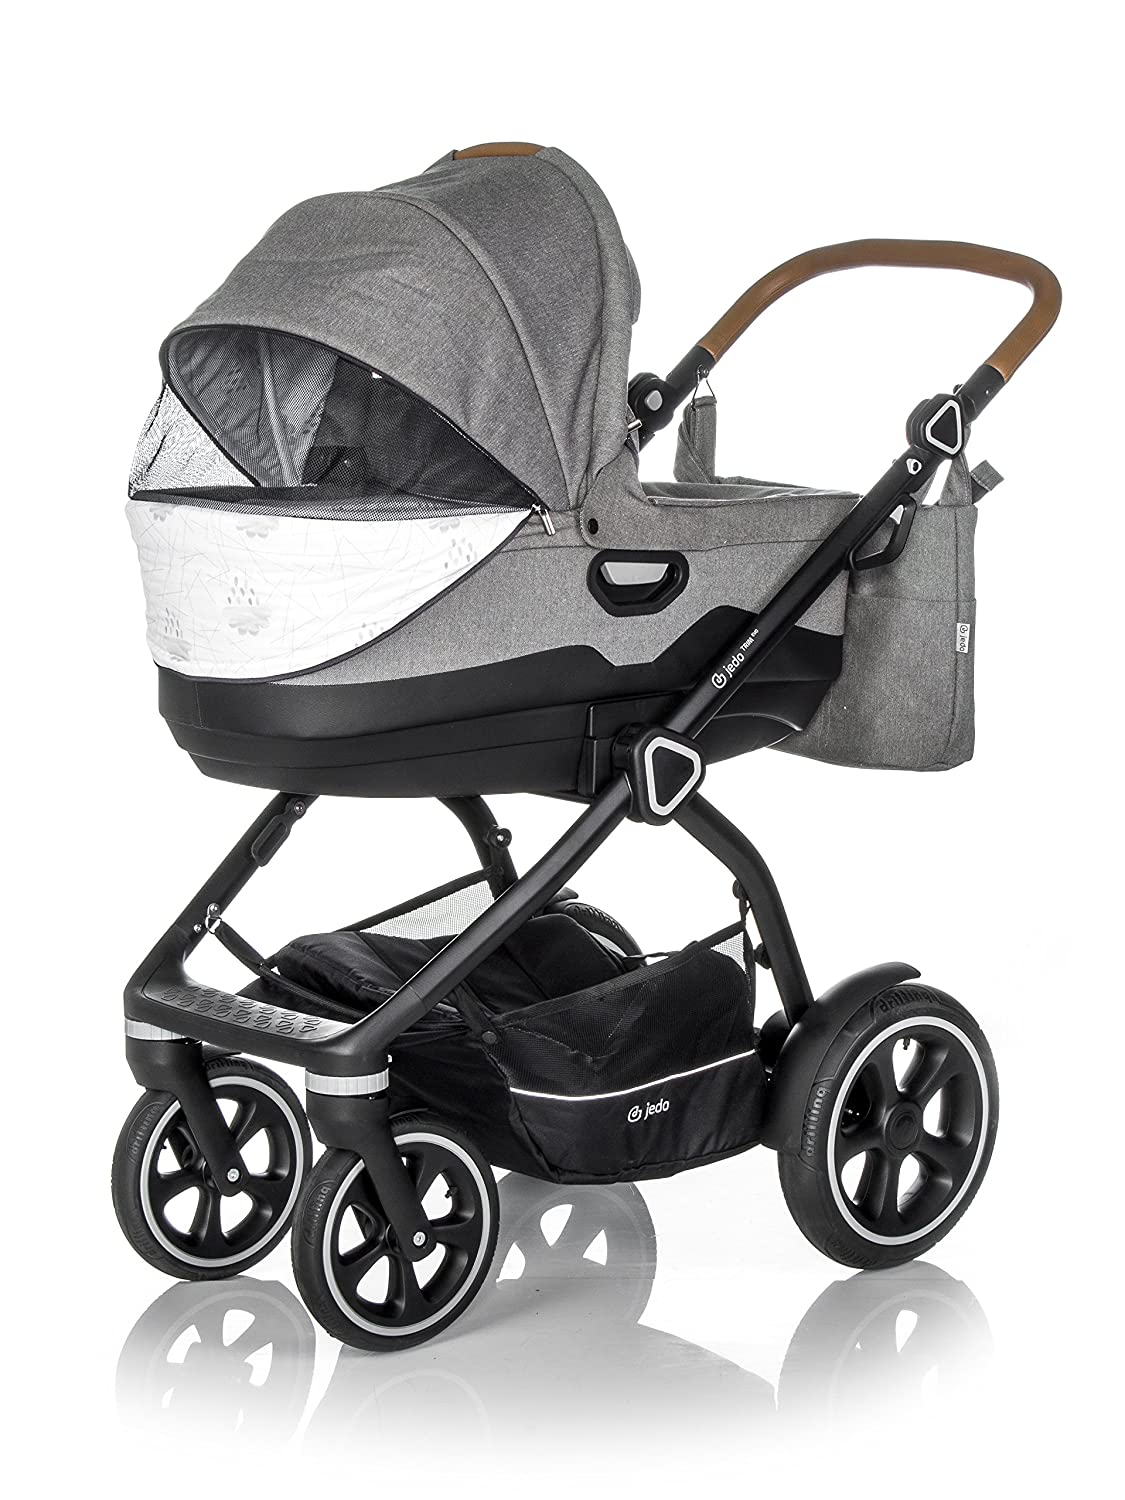 Baby stroller Jedo: photo and review of models, reviews 86